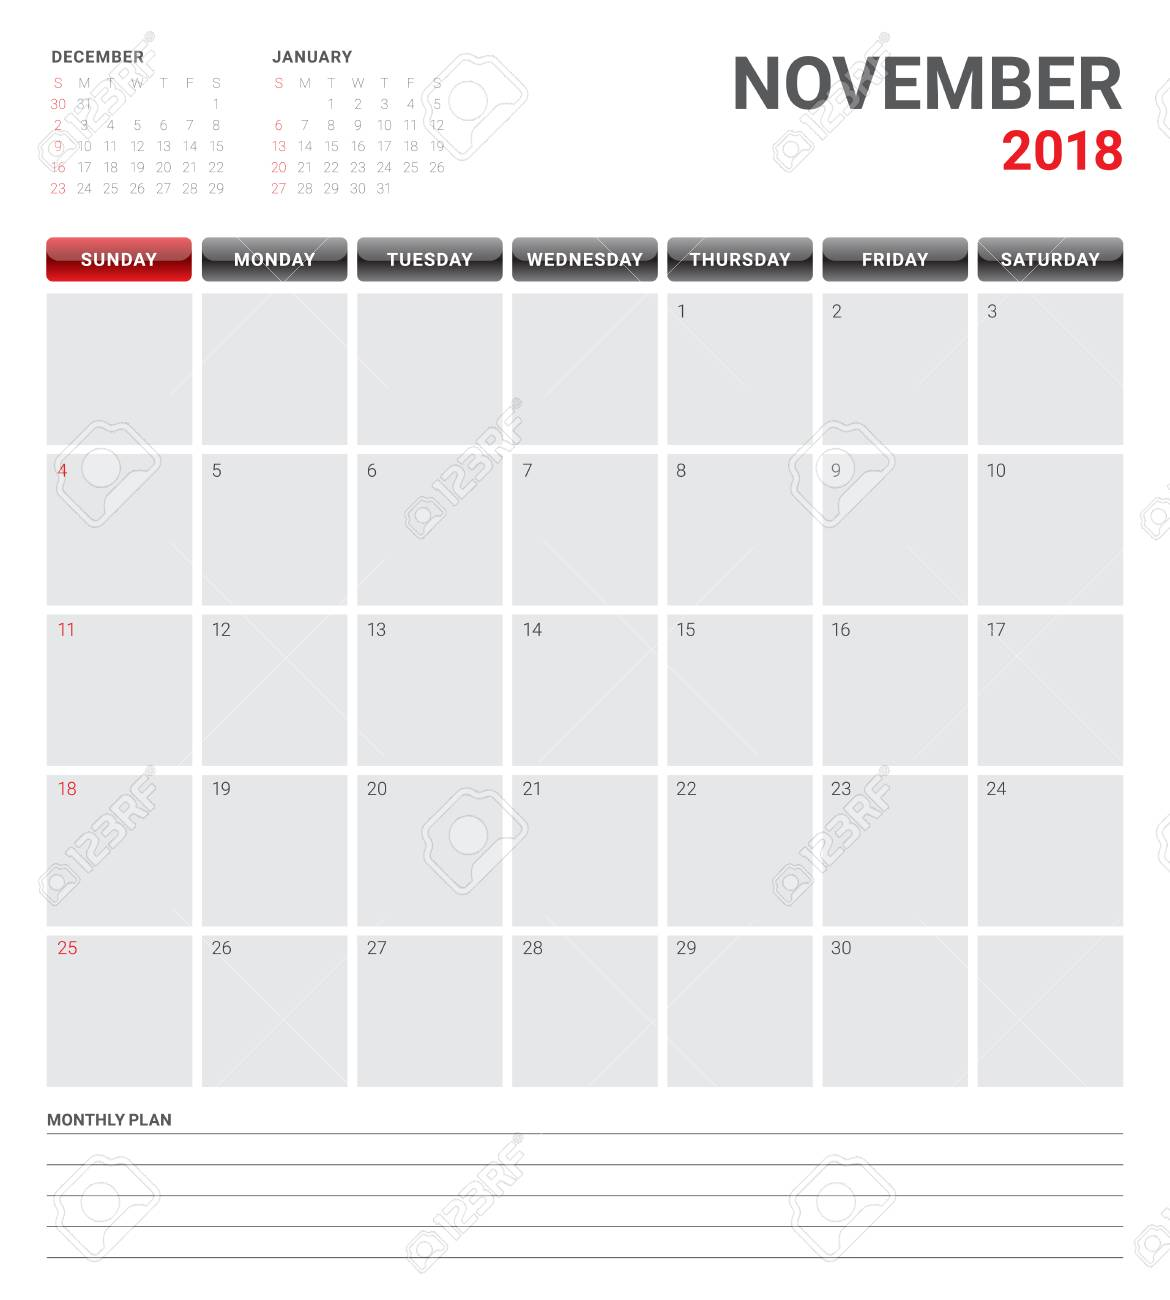 november 2018 planner calendar vector illustration simple and clean design stock vector 89979735